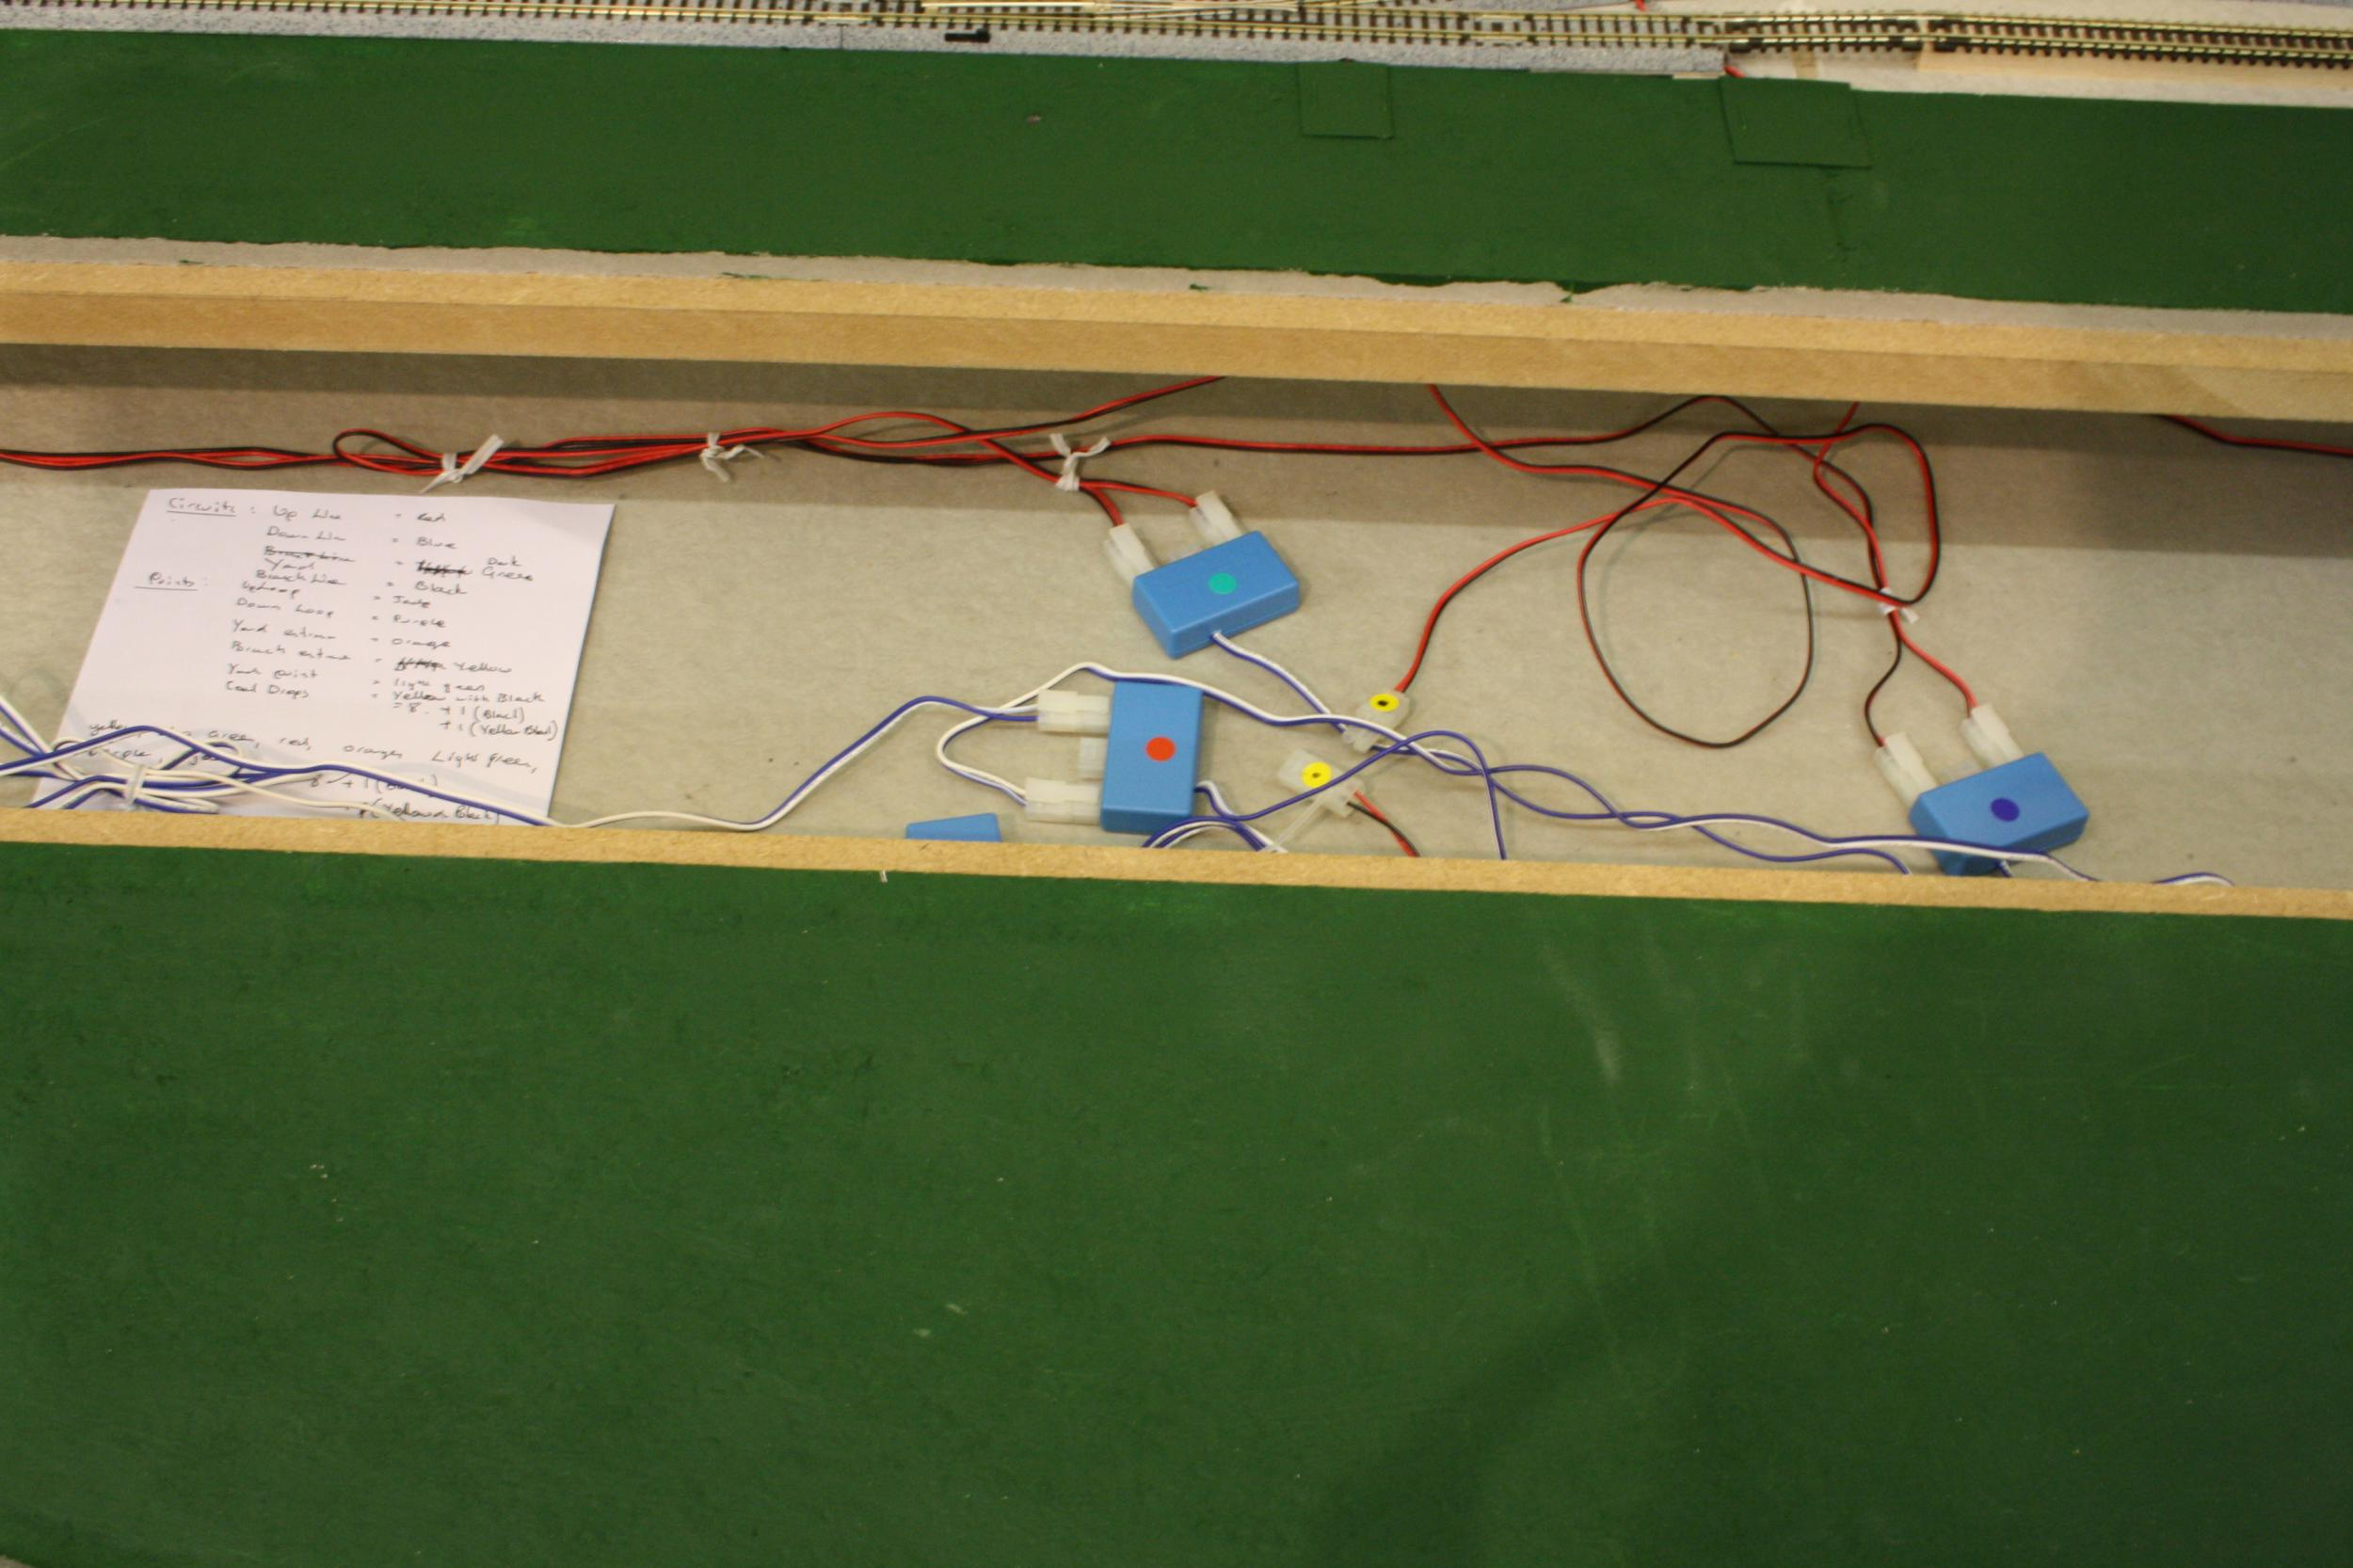 Poppingham A Table Top Railway In British N Gauge Wiring Trough Definition There Several Circuits Here Each With Its Own Identifying Colour The Three Into One Adaptors Are Super For Reducing Amount Of Wires